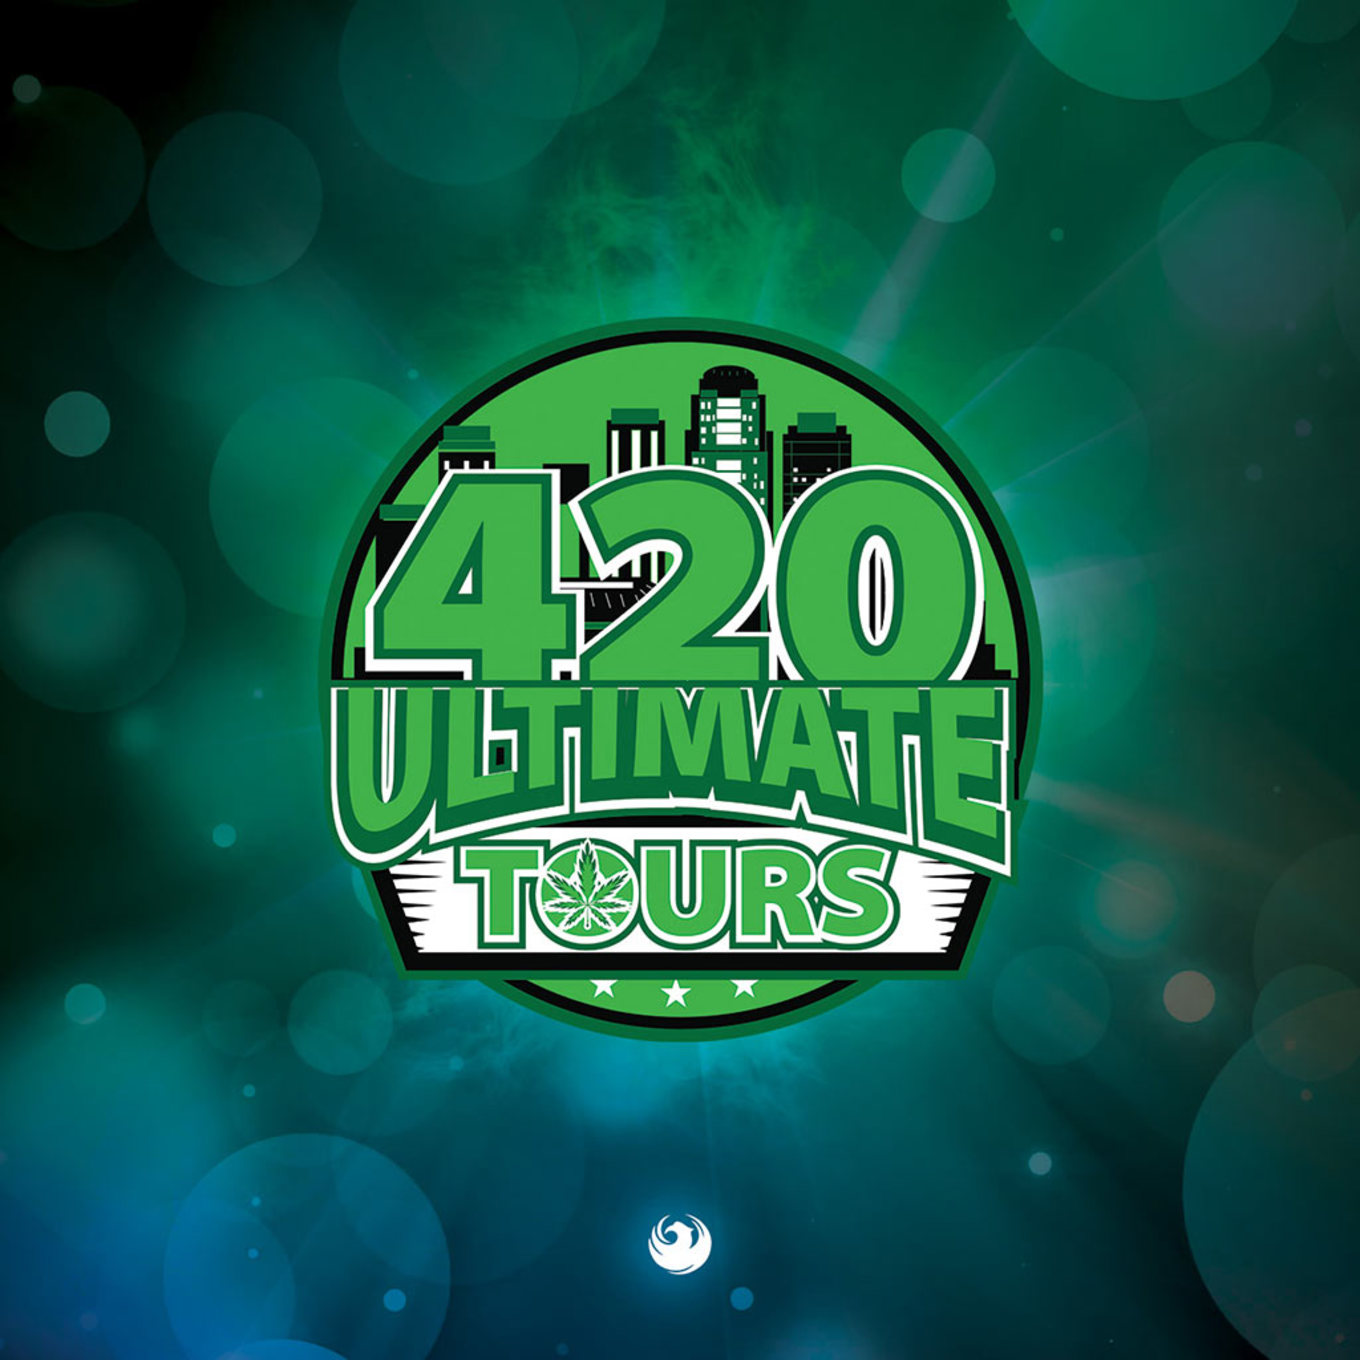 420 Ultimate Tours - Holiday Lights Dispensary Tour #1 12/15